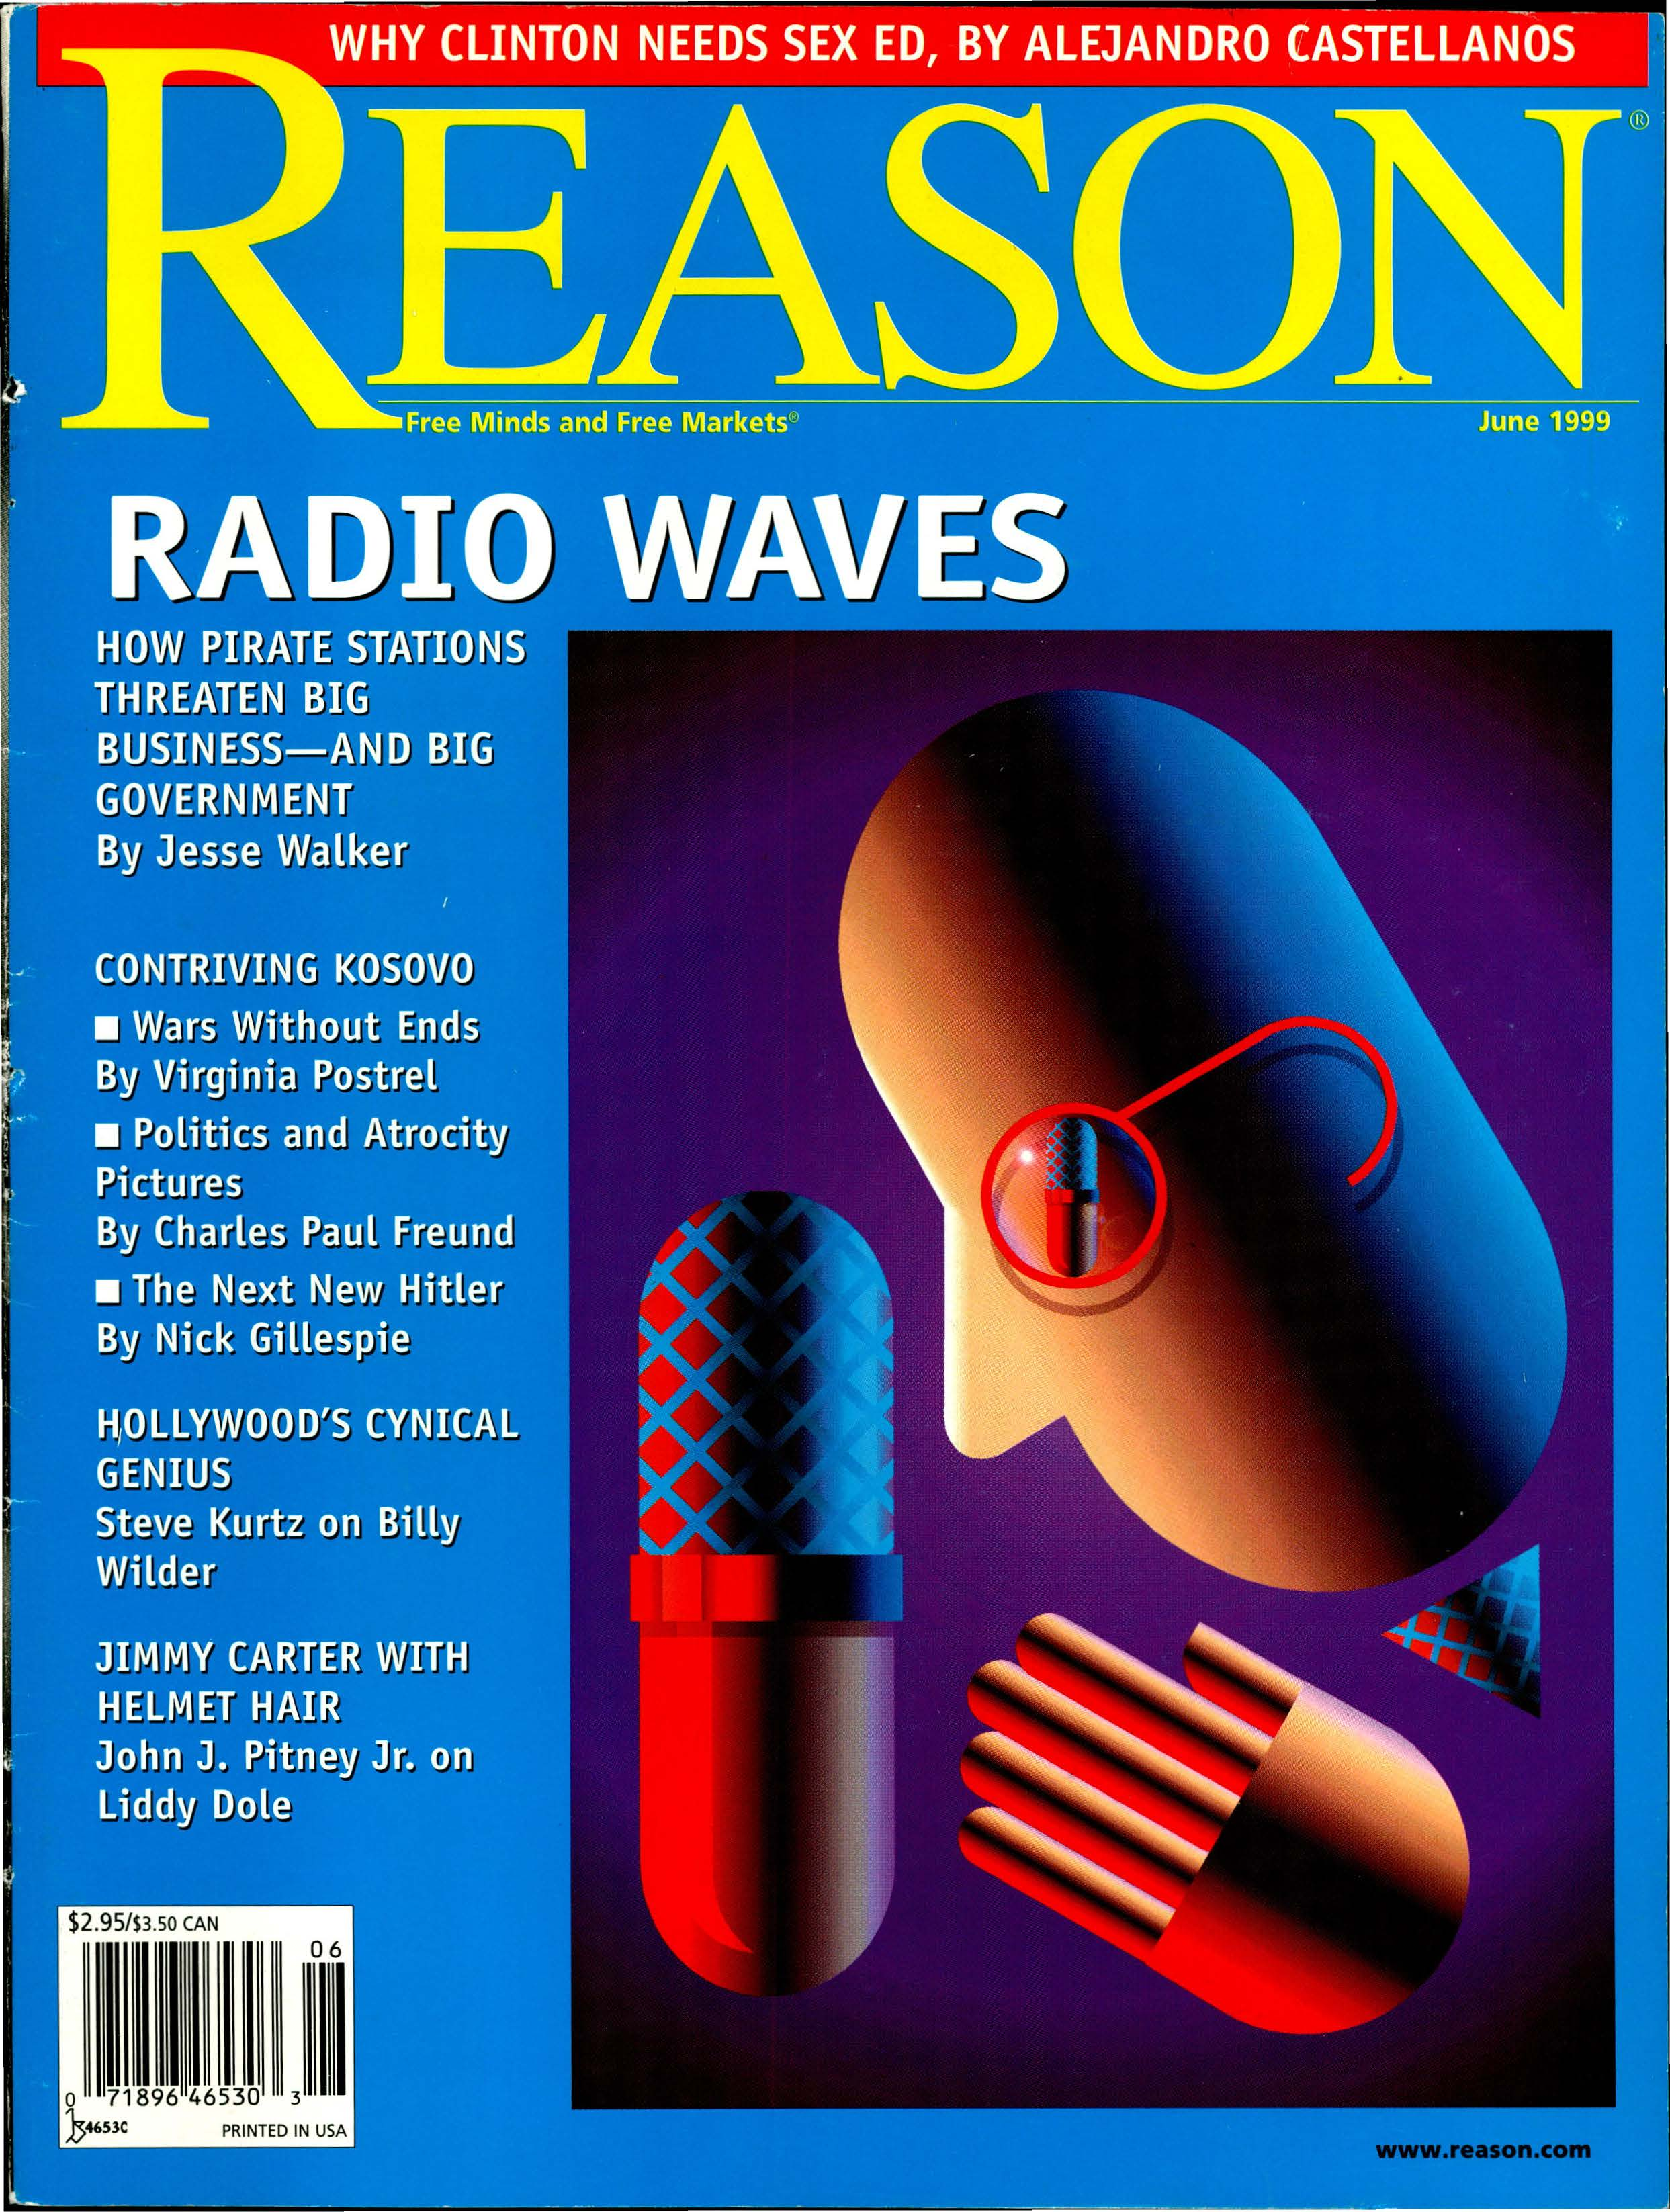 Reason Magazine, June 1999 cover image